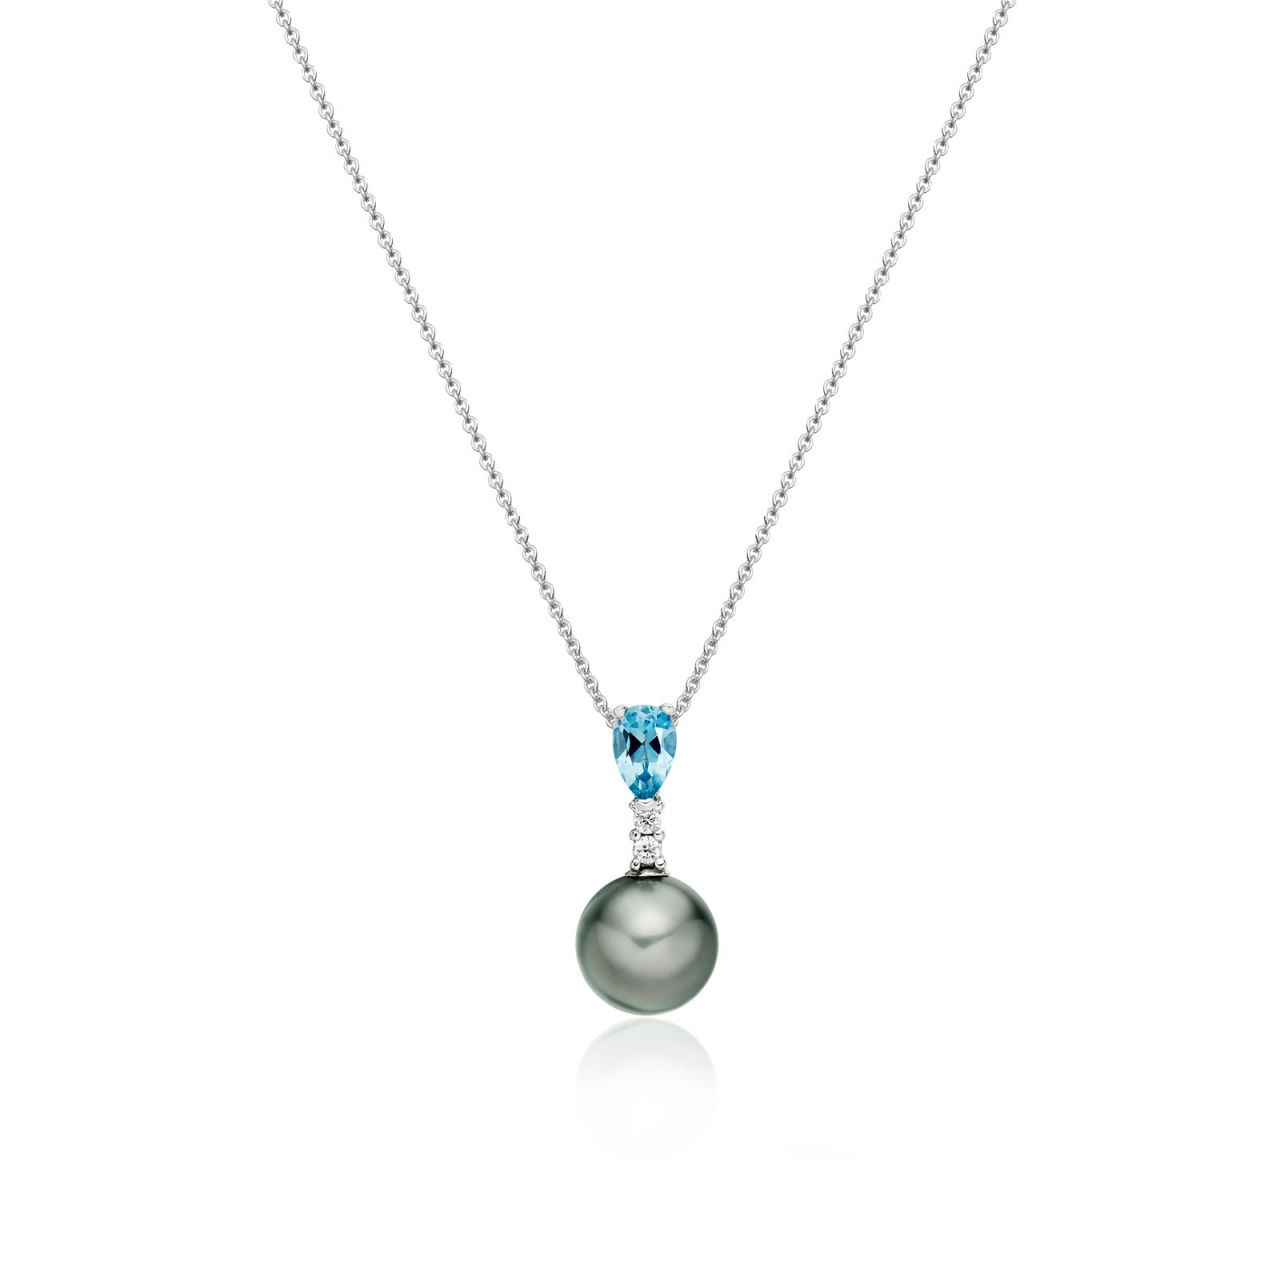 Classic Pear Drop Pendant in Aquamarine-TPVARWG0999-1